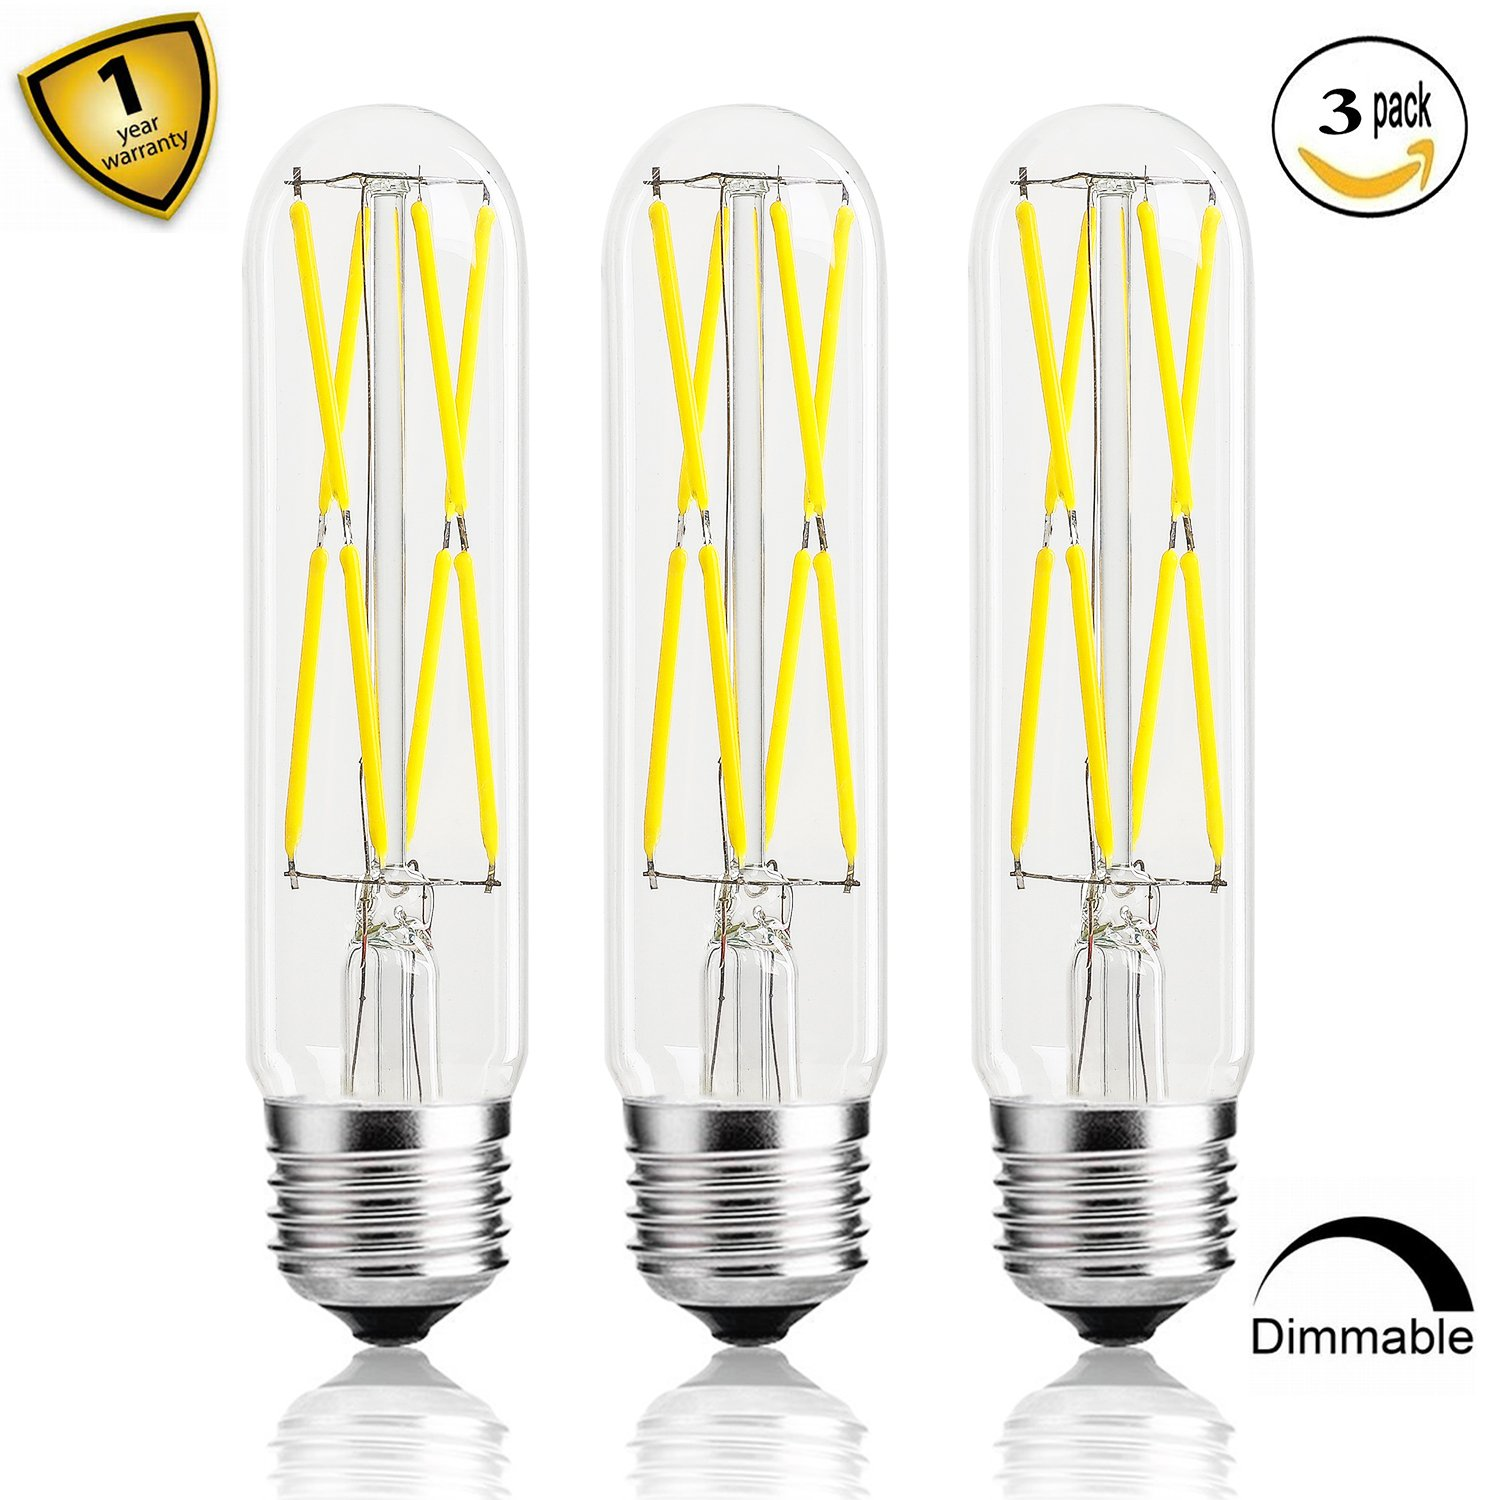 Leools Dimmable Edison Led Tubular Bulb T10,8W Vintage Led Filament Light Bulb 75W Incandescent, 4000K Daylight Glow,E26 Medium Base Lamp Bulb,3 Pack